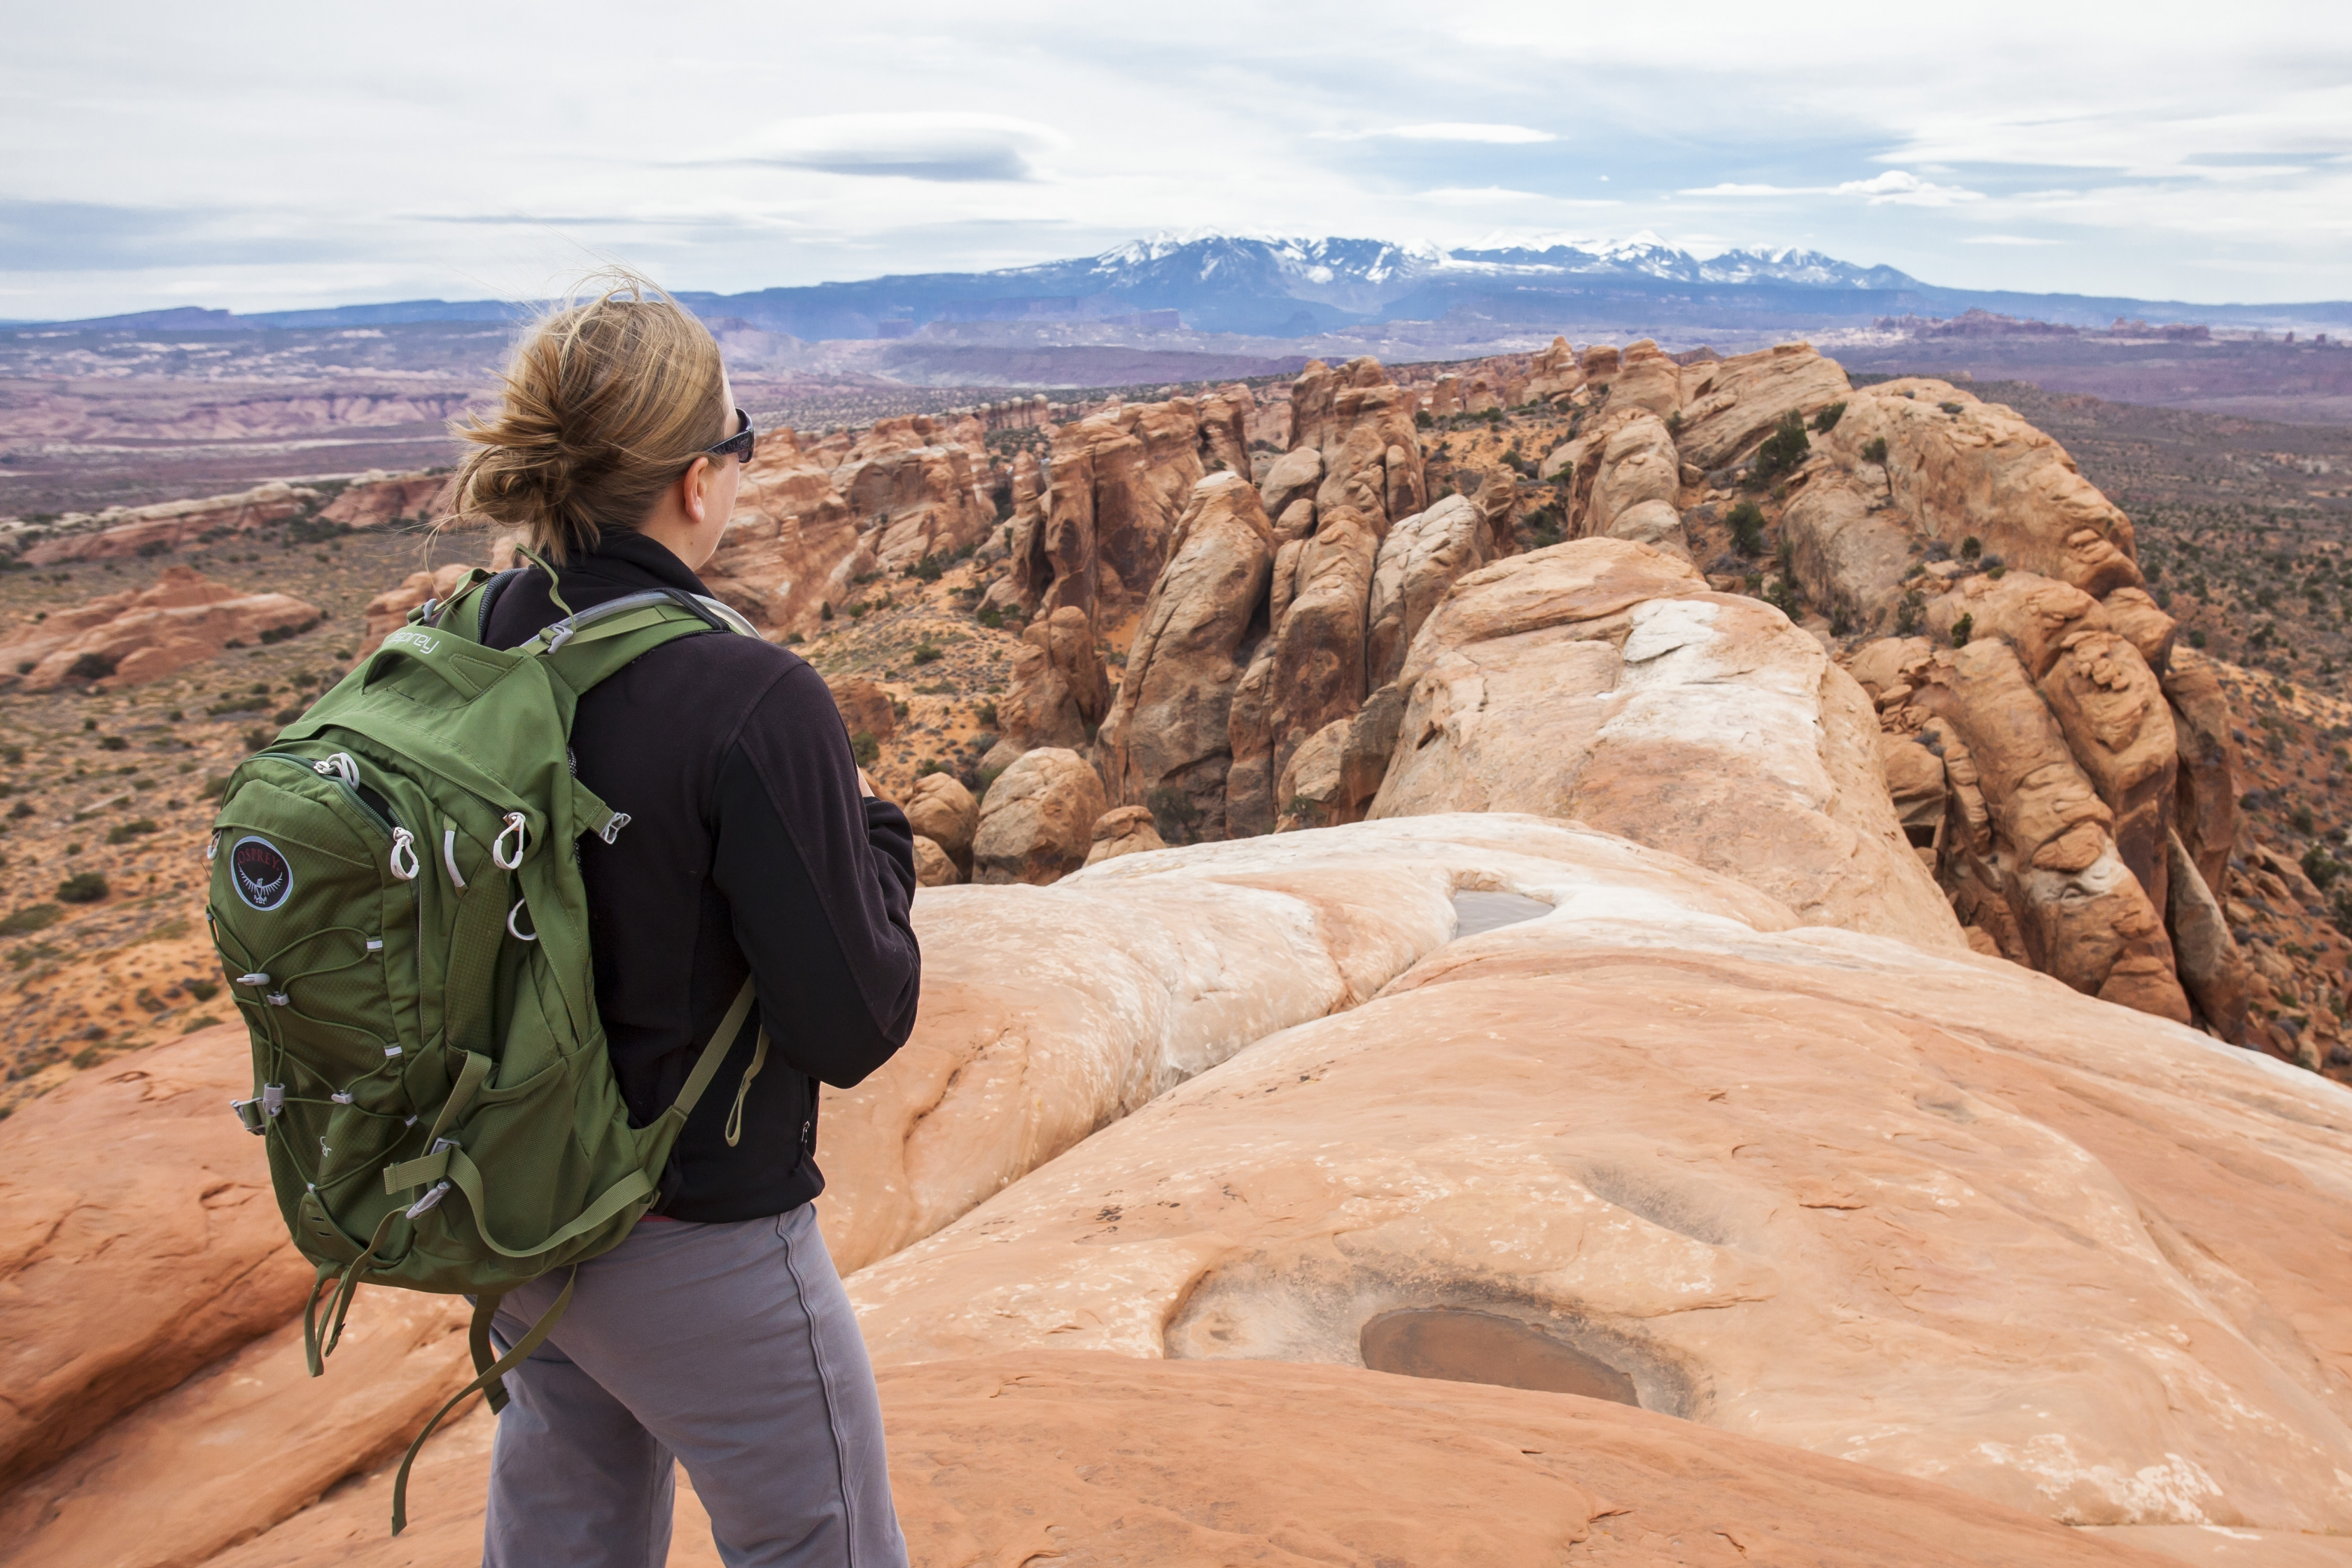 A hiker looks over the expanse at Arches National Park.